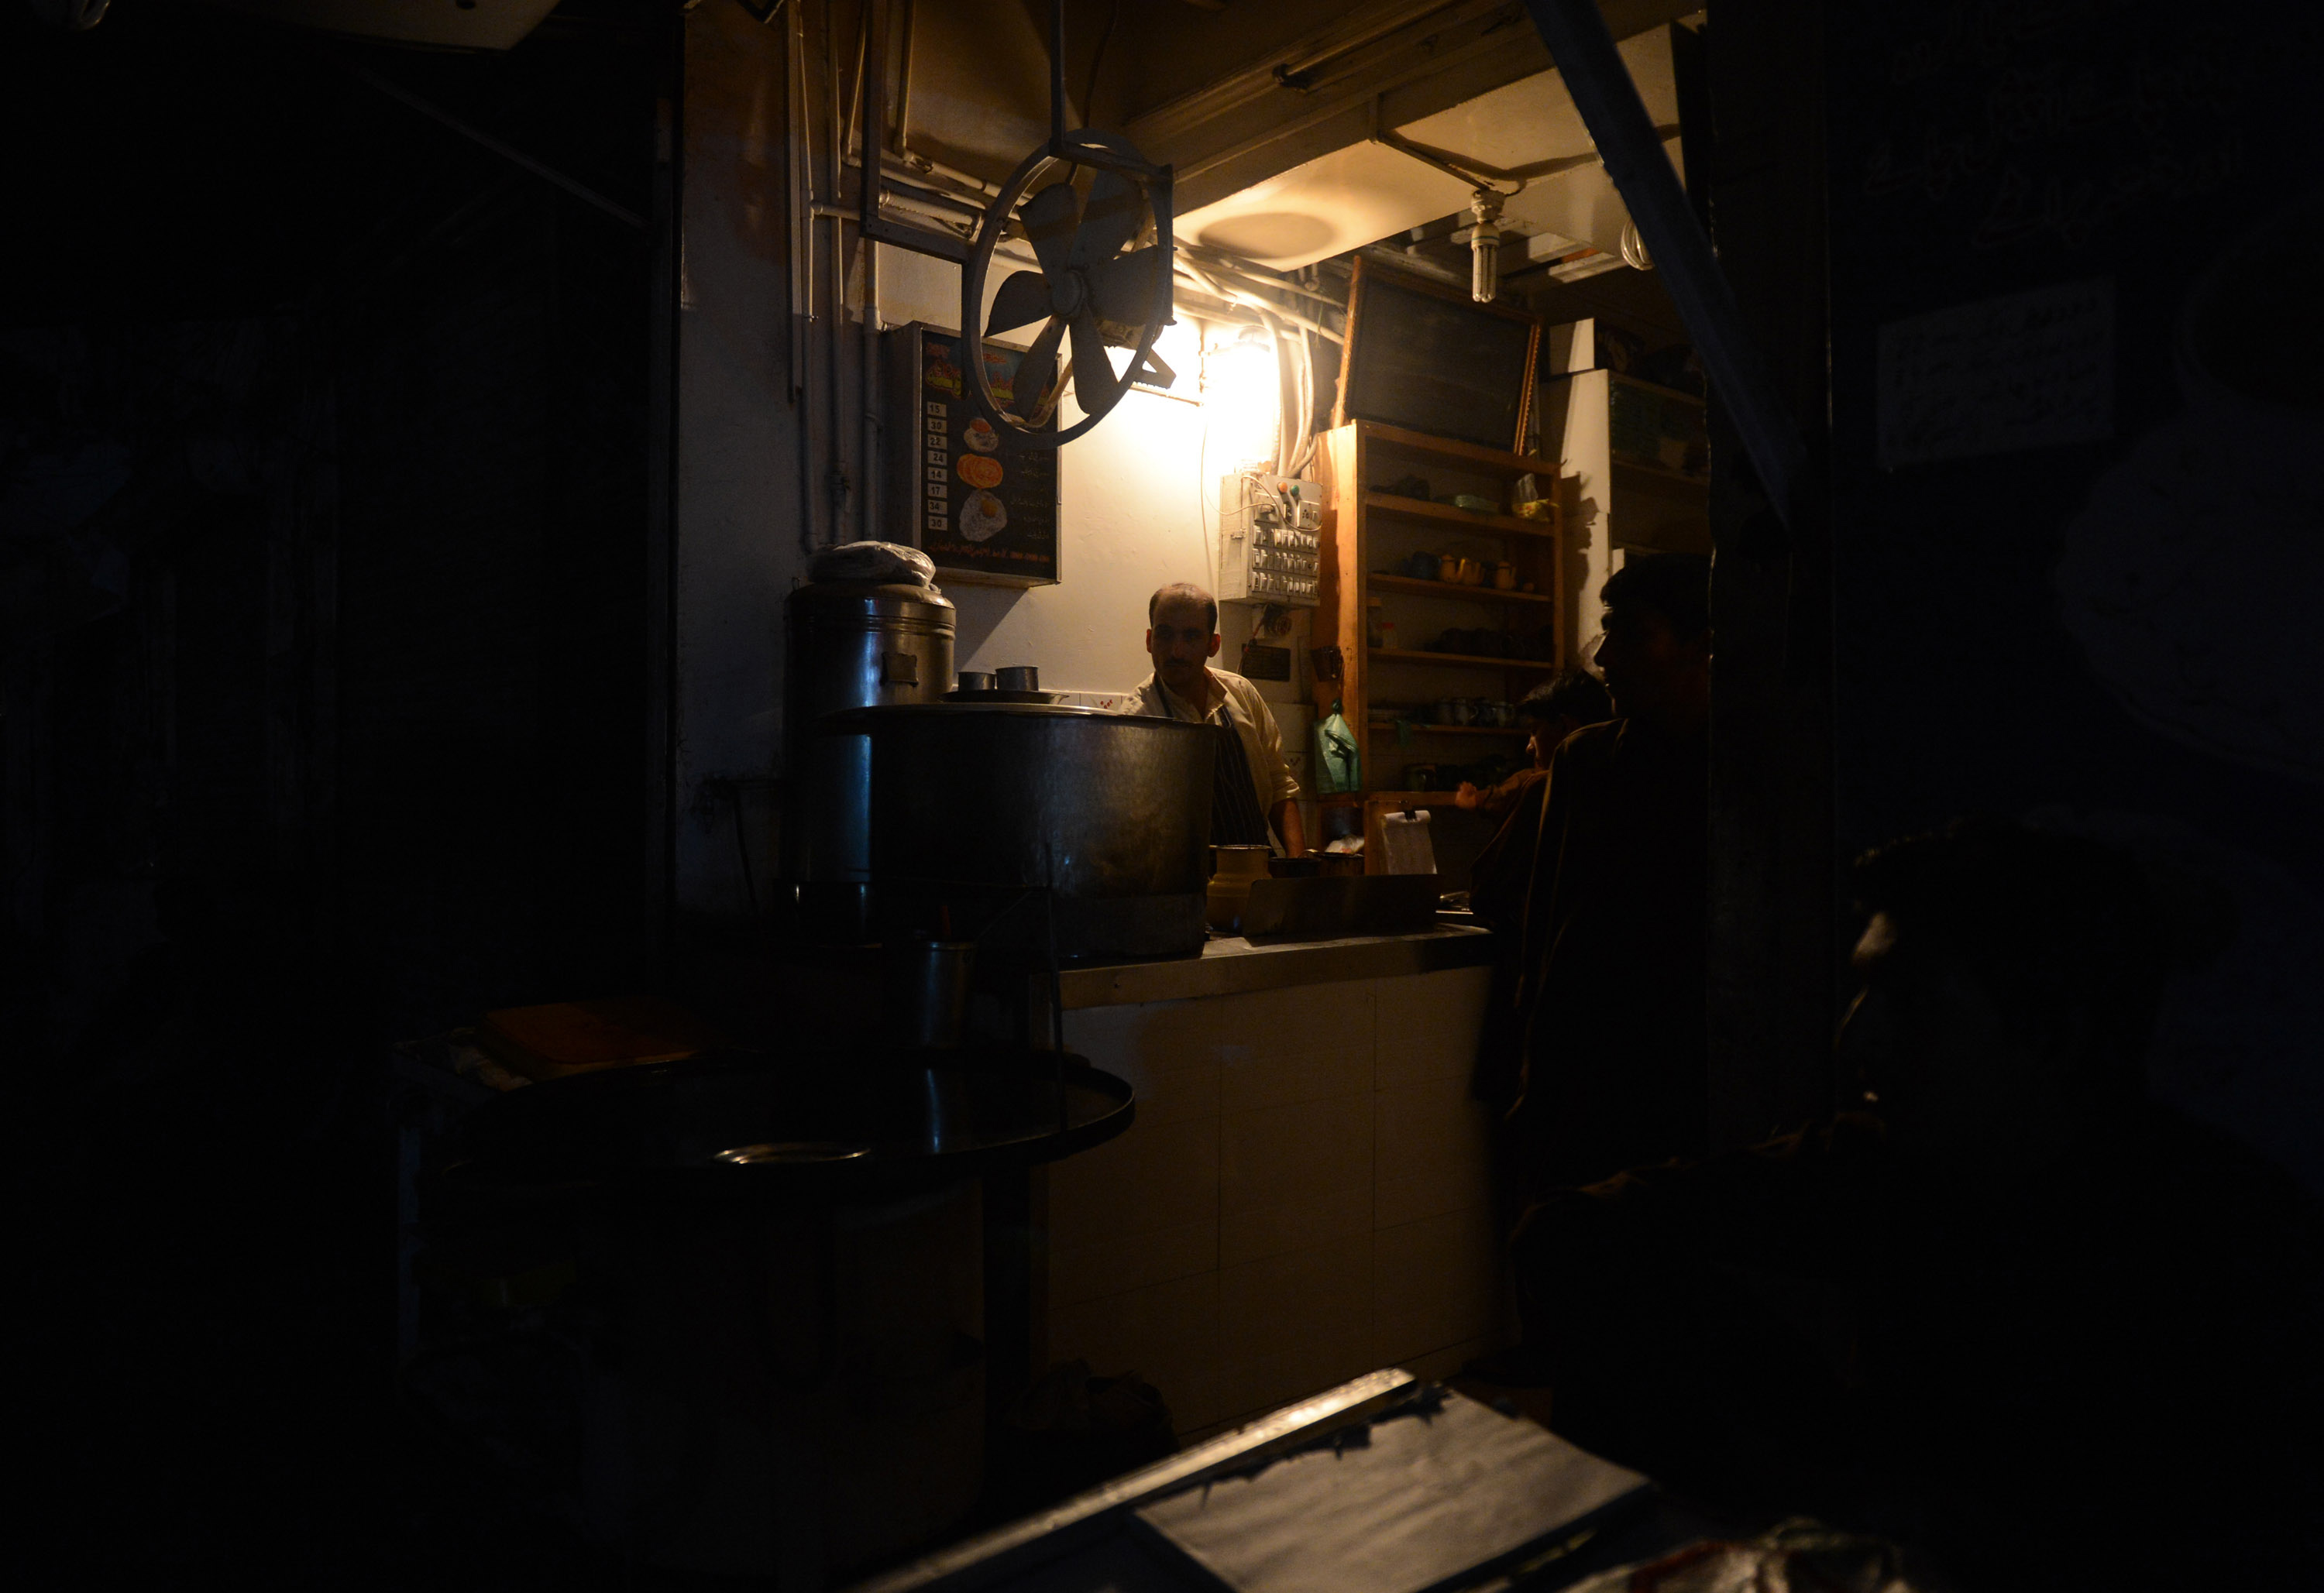 This picture taken on February 24, 2013 shows Pakistani man preparing tea at his restaurant during a nationwide power blackout in Karachi. Pakistan was hit by a nationwide blackout for more than two hours after the breakdown of a major plant caused power stations to stop working across the country, officials said on February 25.  ? AFP Photo